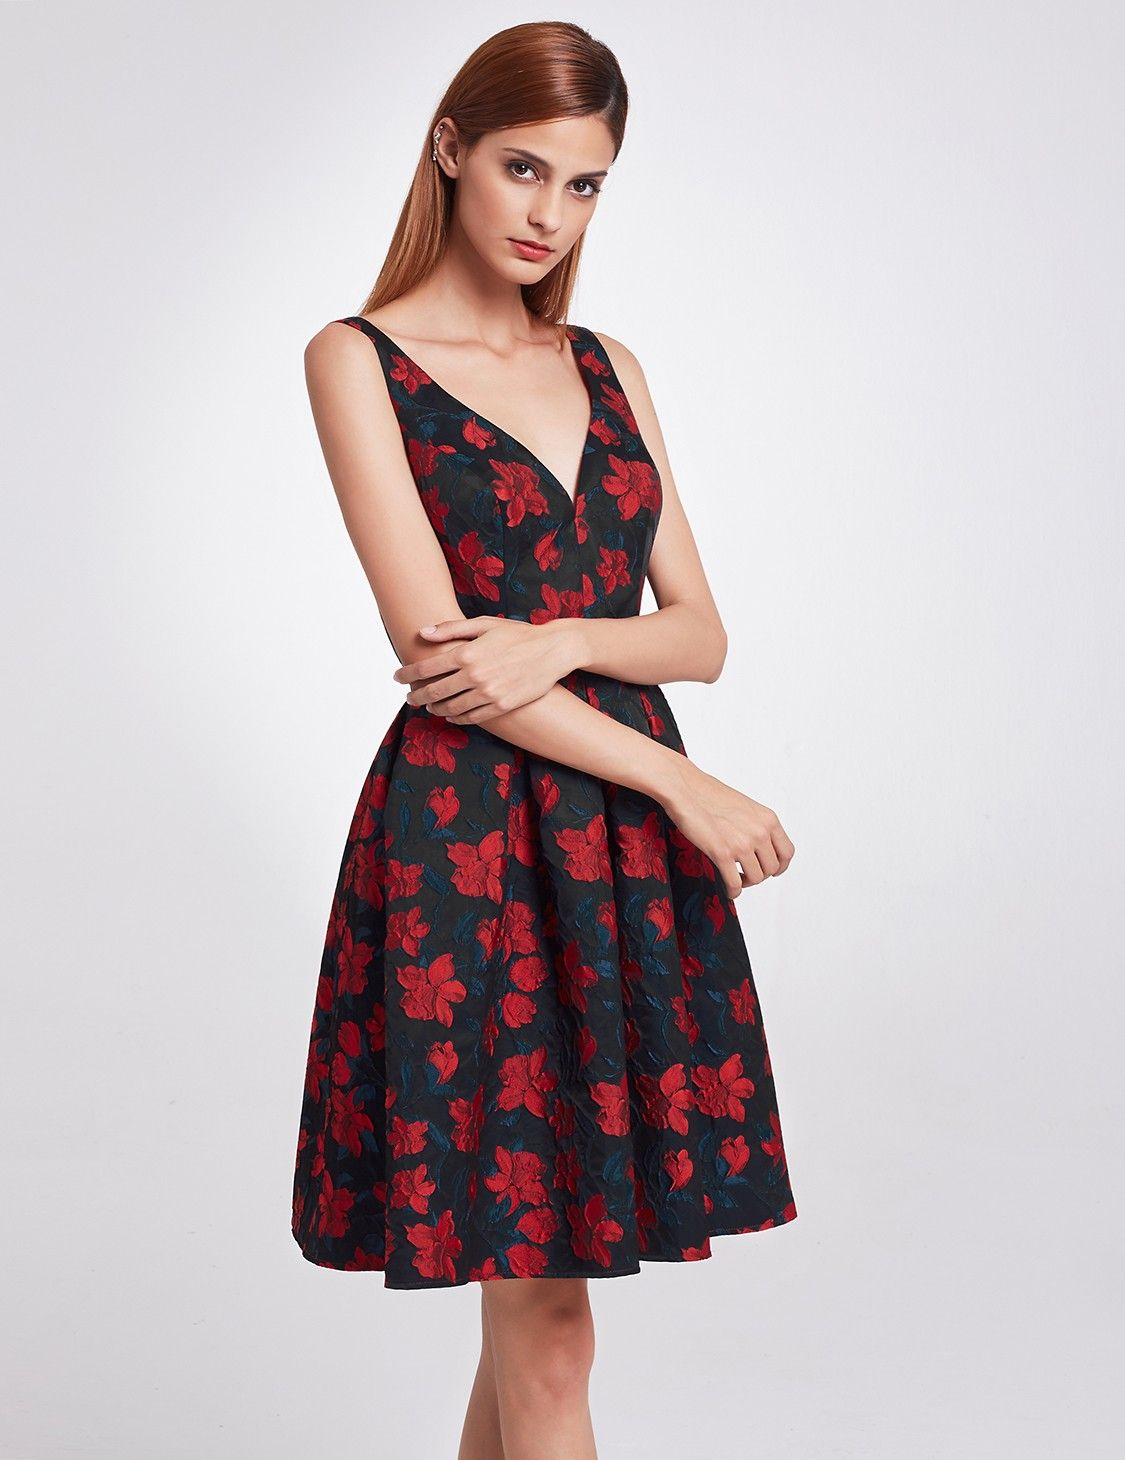 Js collections Floral Embroidered Fit And Flare Gown in